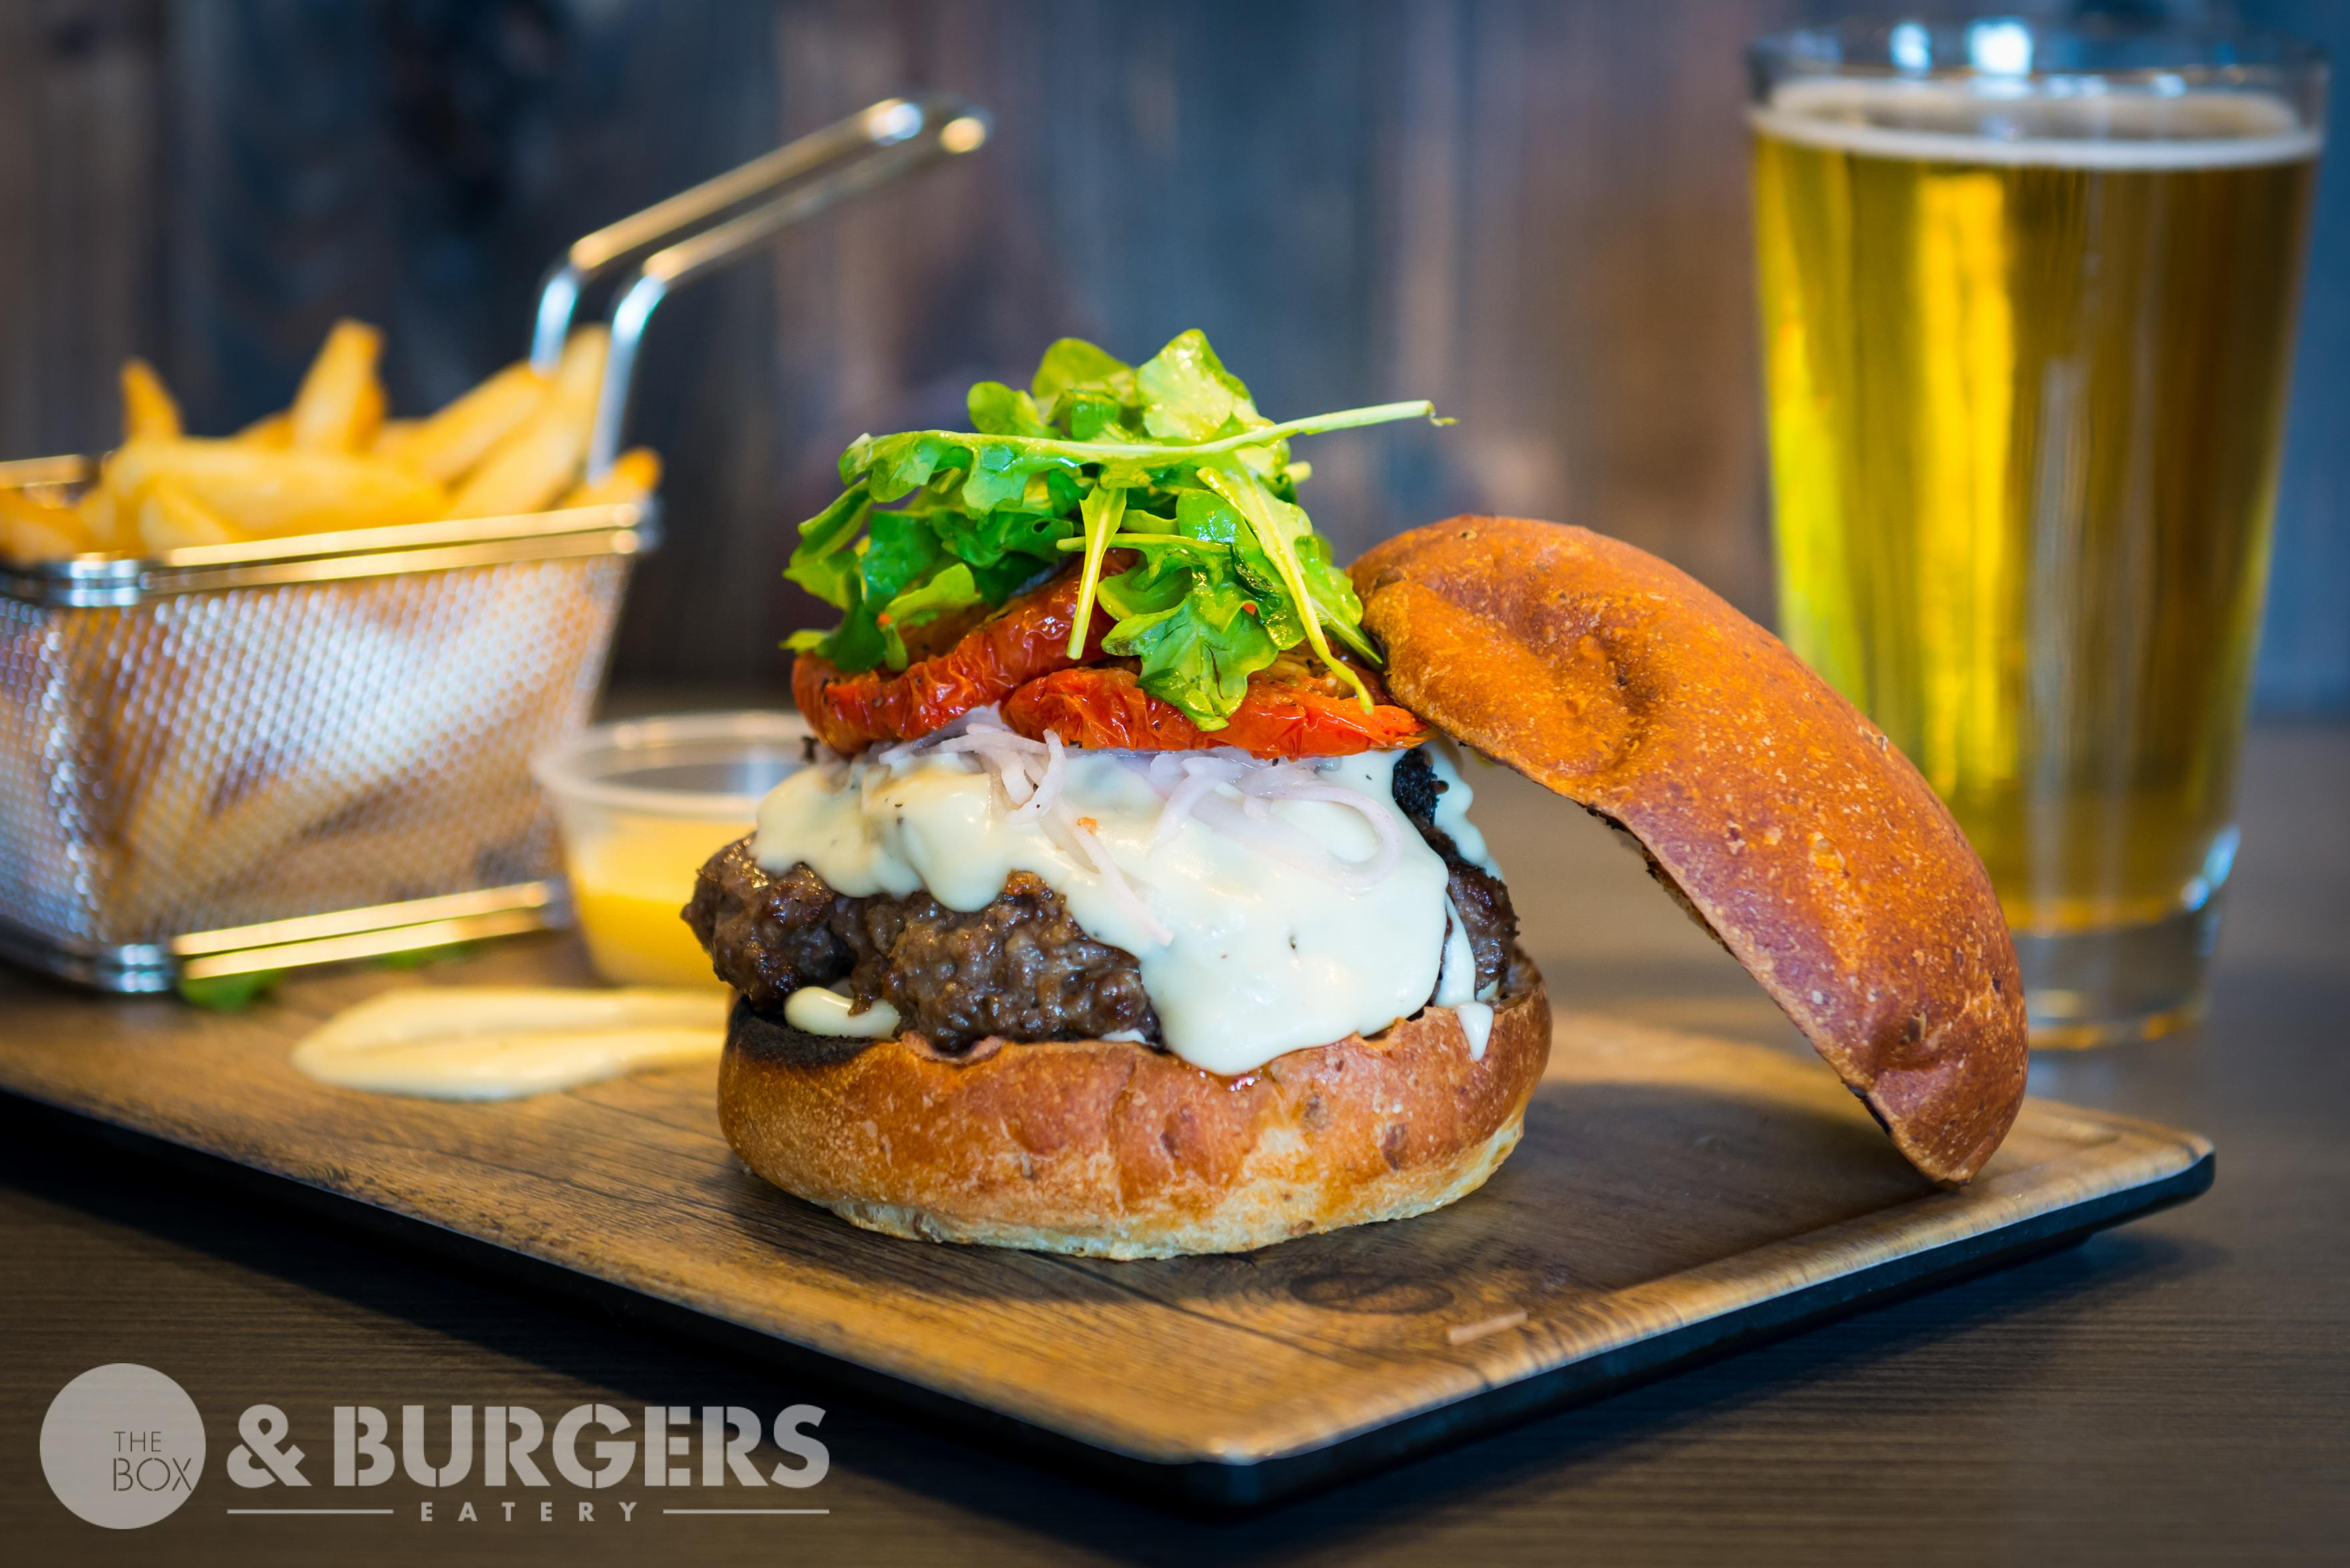 The Box & Burgers Eatery Now Open in Kirkland!